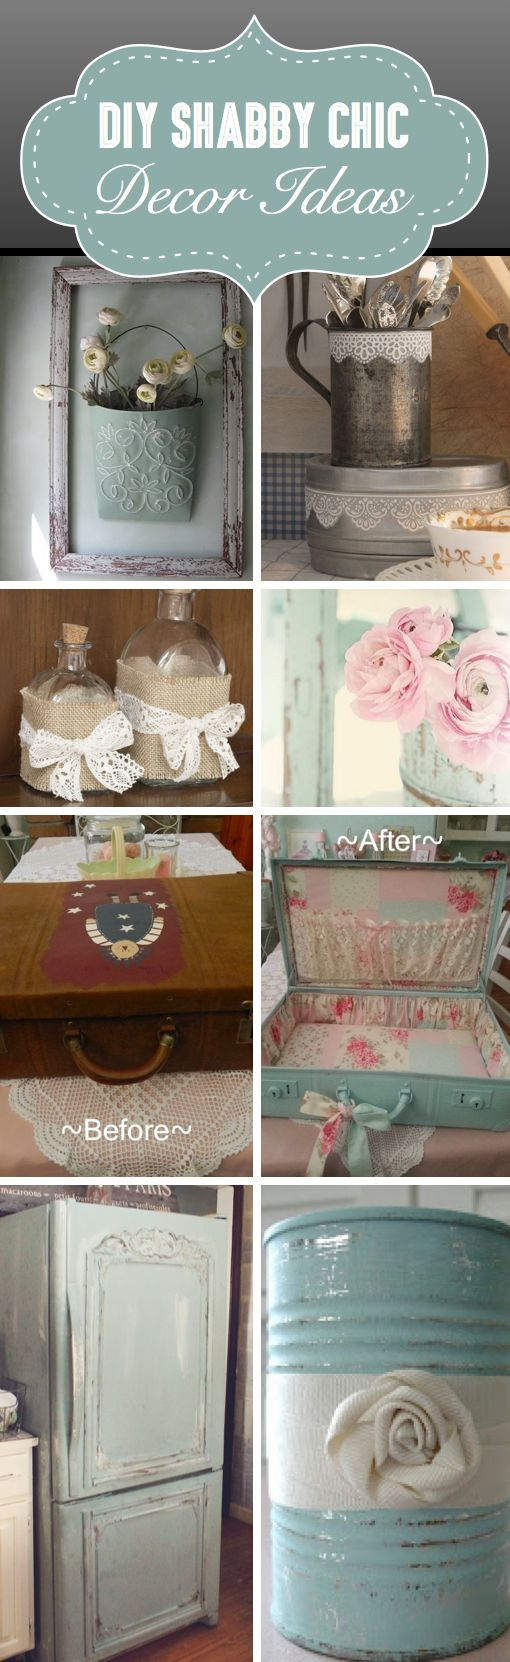 25 DIY Shabby Chic Decor Ideas For Women Who Love The Retro Style - Here you will find more than 25 different DIY shabby chic decor ideas that you can use to redefine your bedroom, your living room or your kitchen!, shabby chic bedroom